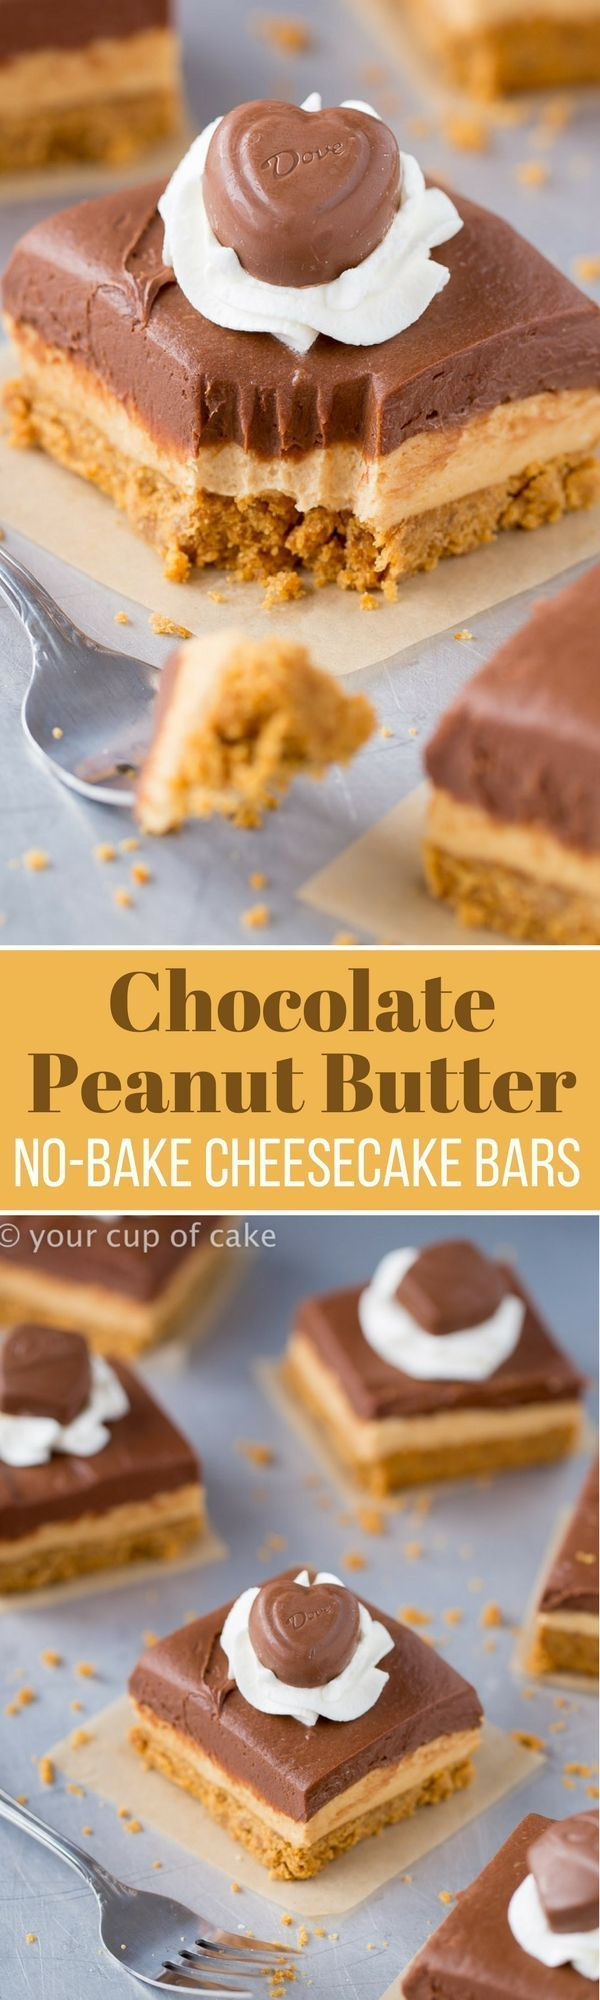 Chocolate Peanut Butter No-Bake Cheesecake Bars, these are SO GOOD! Love this easy recipe! | Posted By: DebbieNet.com